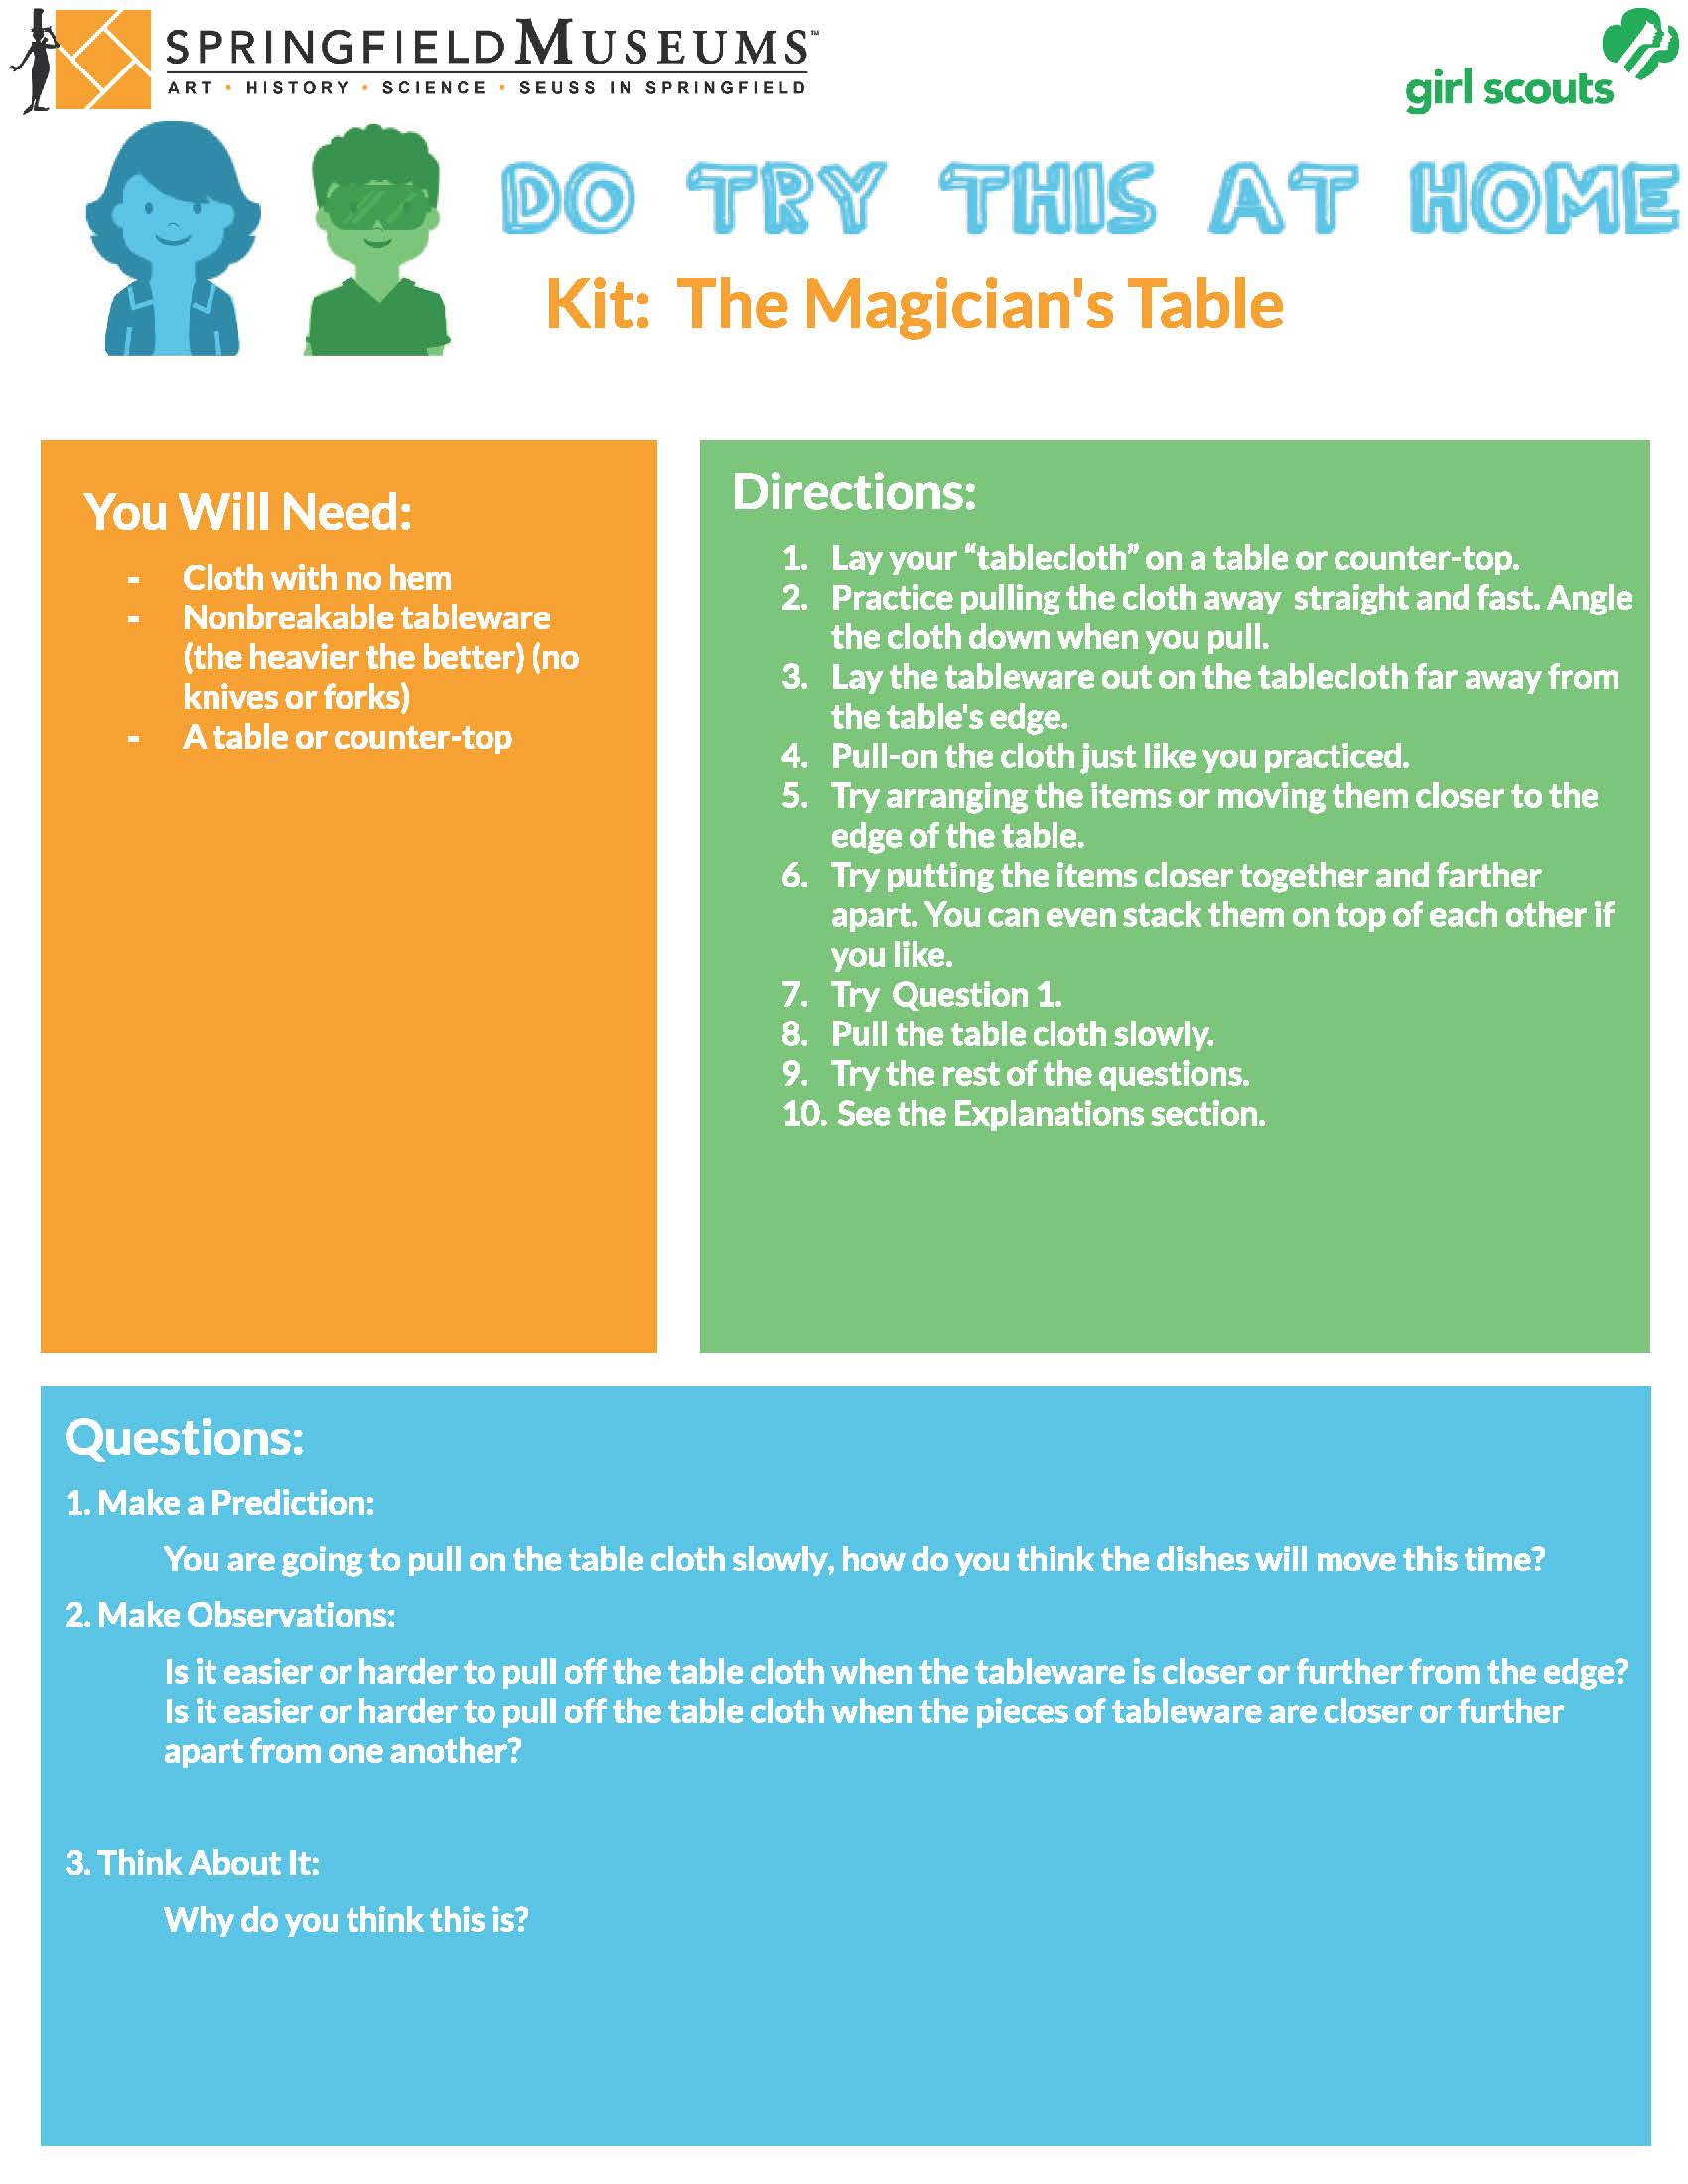 The Magician's Table